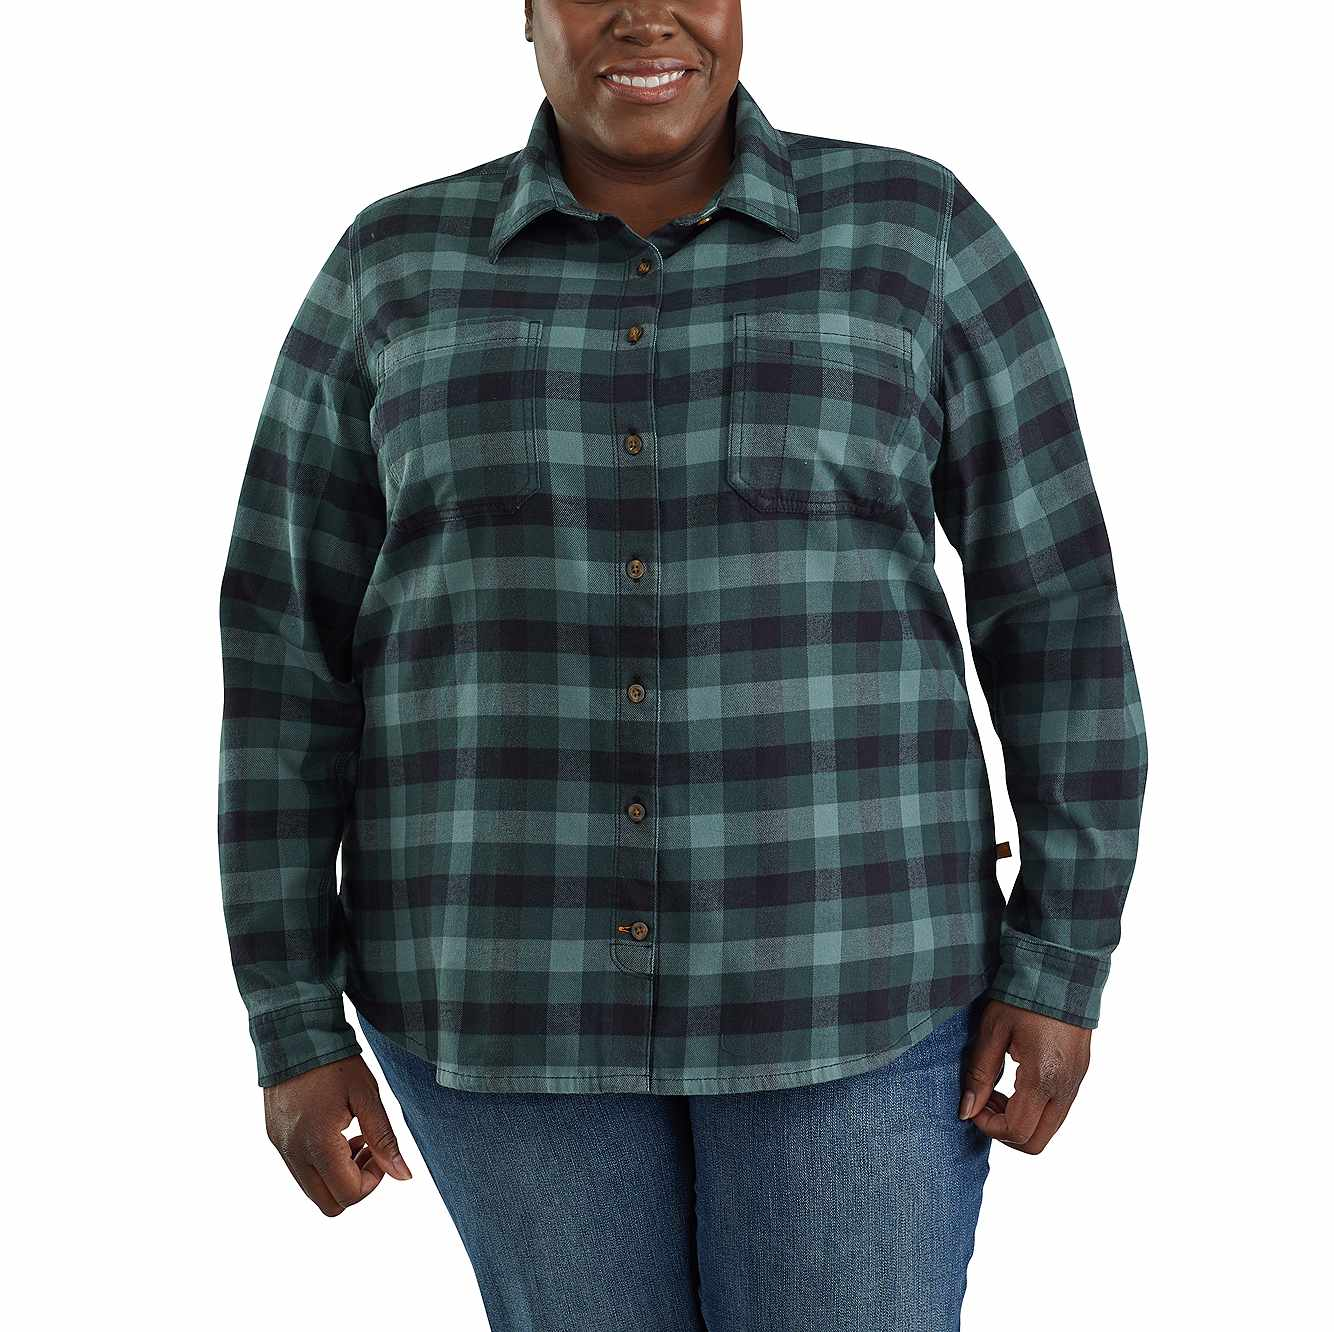 Picture of Rugged Flex® Hamilton Flannel Shirt in Balsam Green